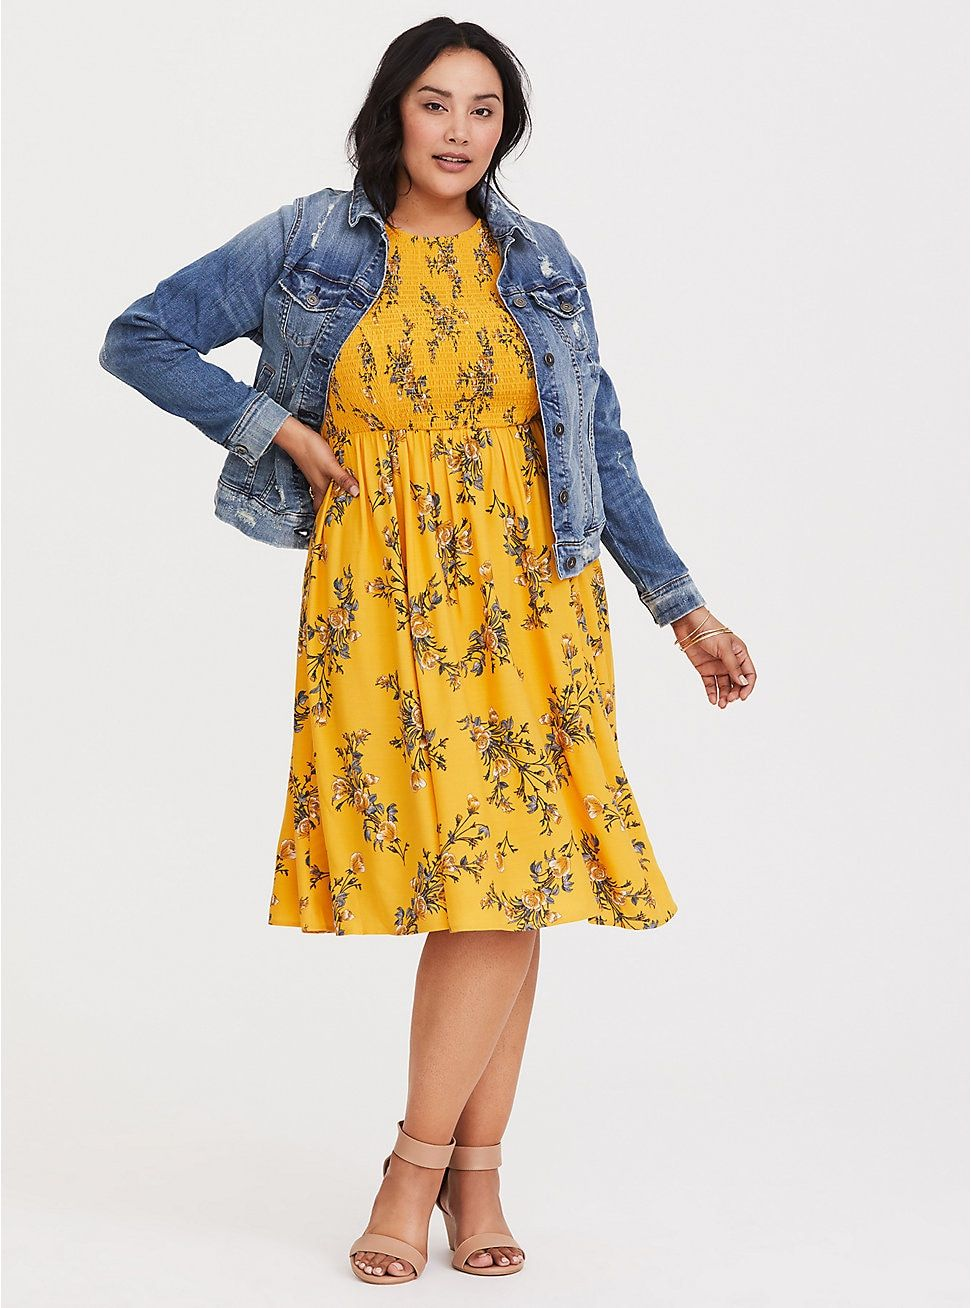 Yellow Floral Smocked Challis Dress | Plus size spring